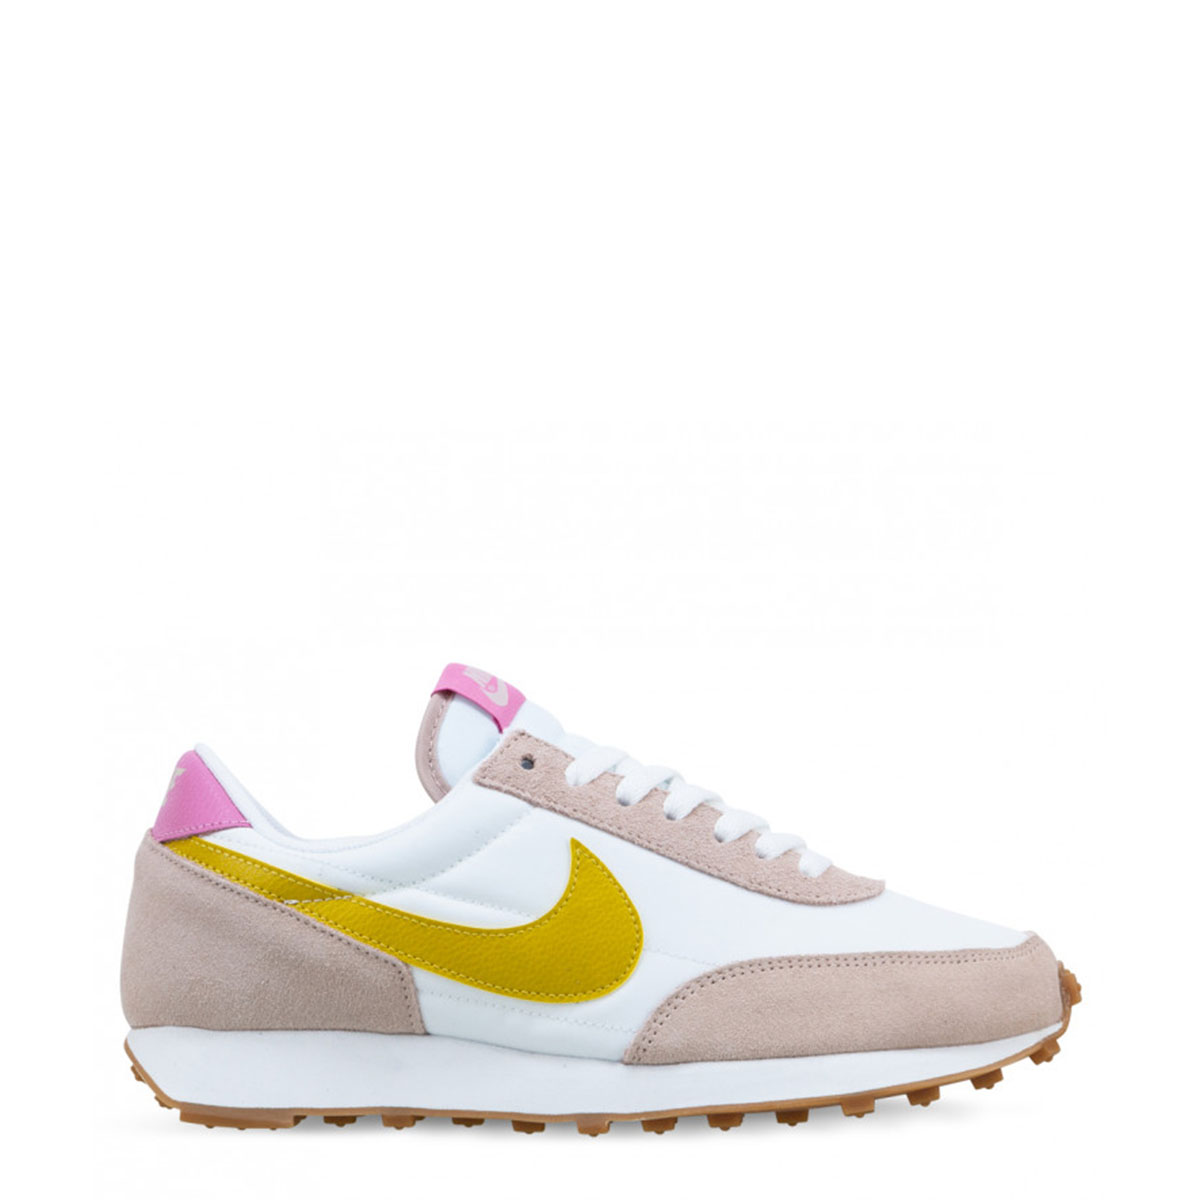 Novelty! Women's Sports, Casual Shoes For Women Sneakers ORIGINAL Brand Nike - DaybreakF